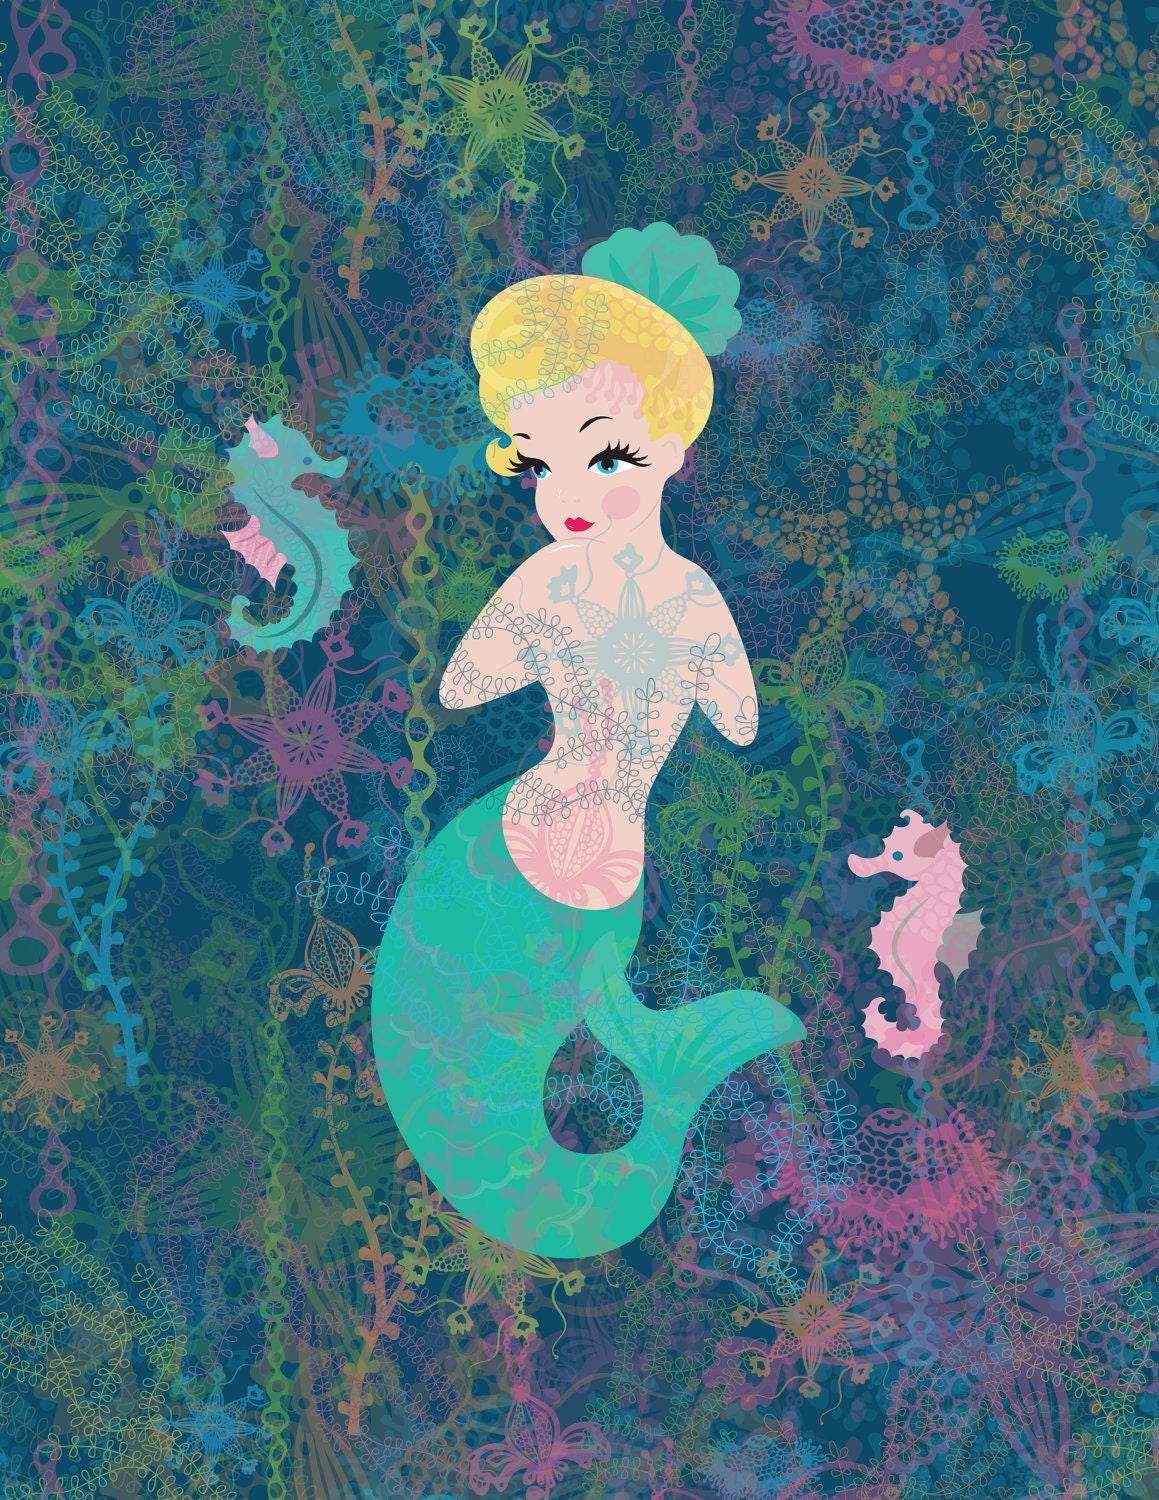 ModPets originals Kitsch Marilyn Mermaid 8 x11 ready to frame Art  Print